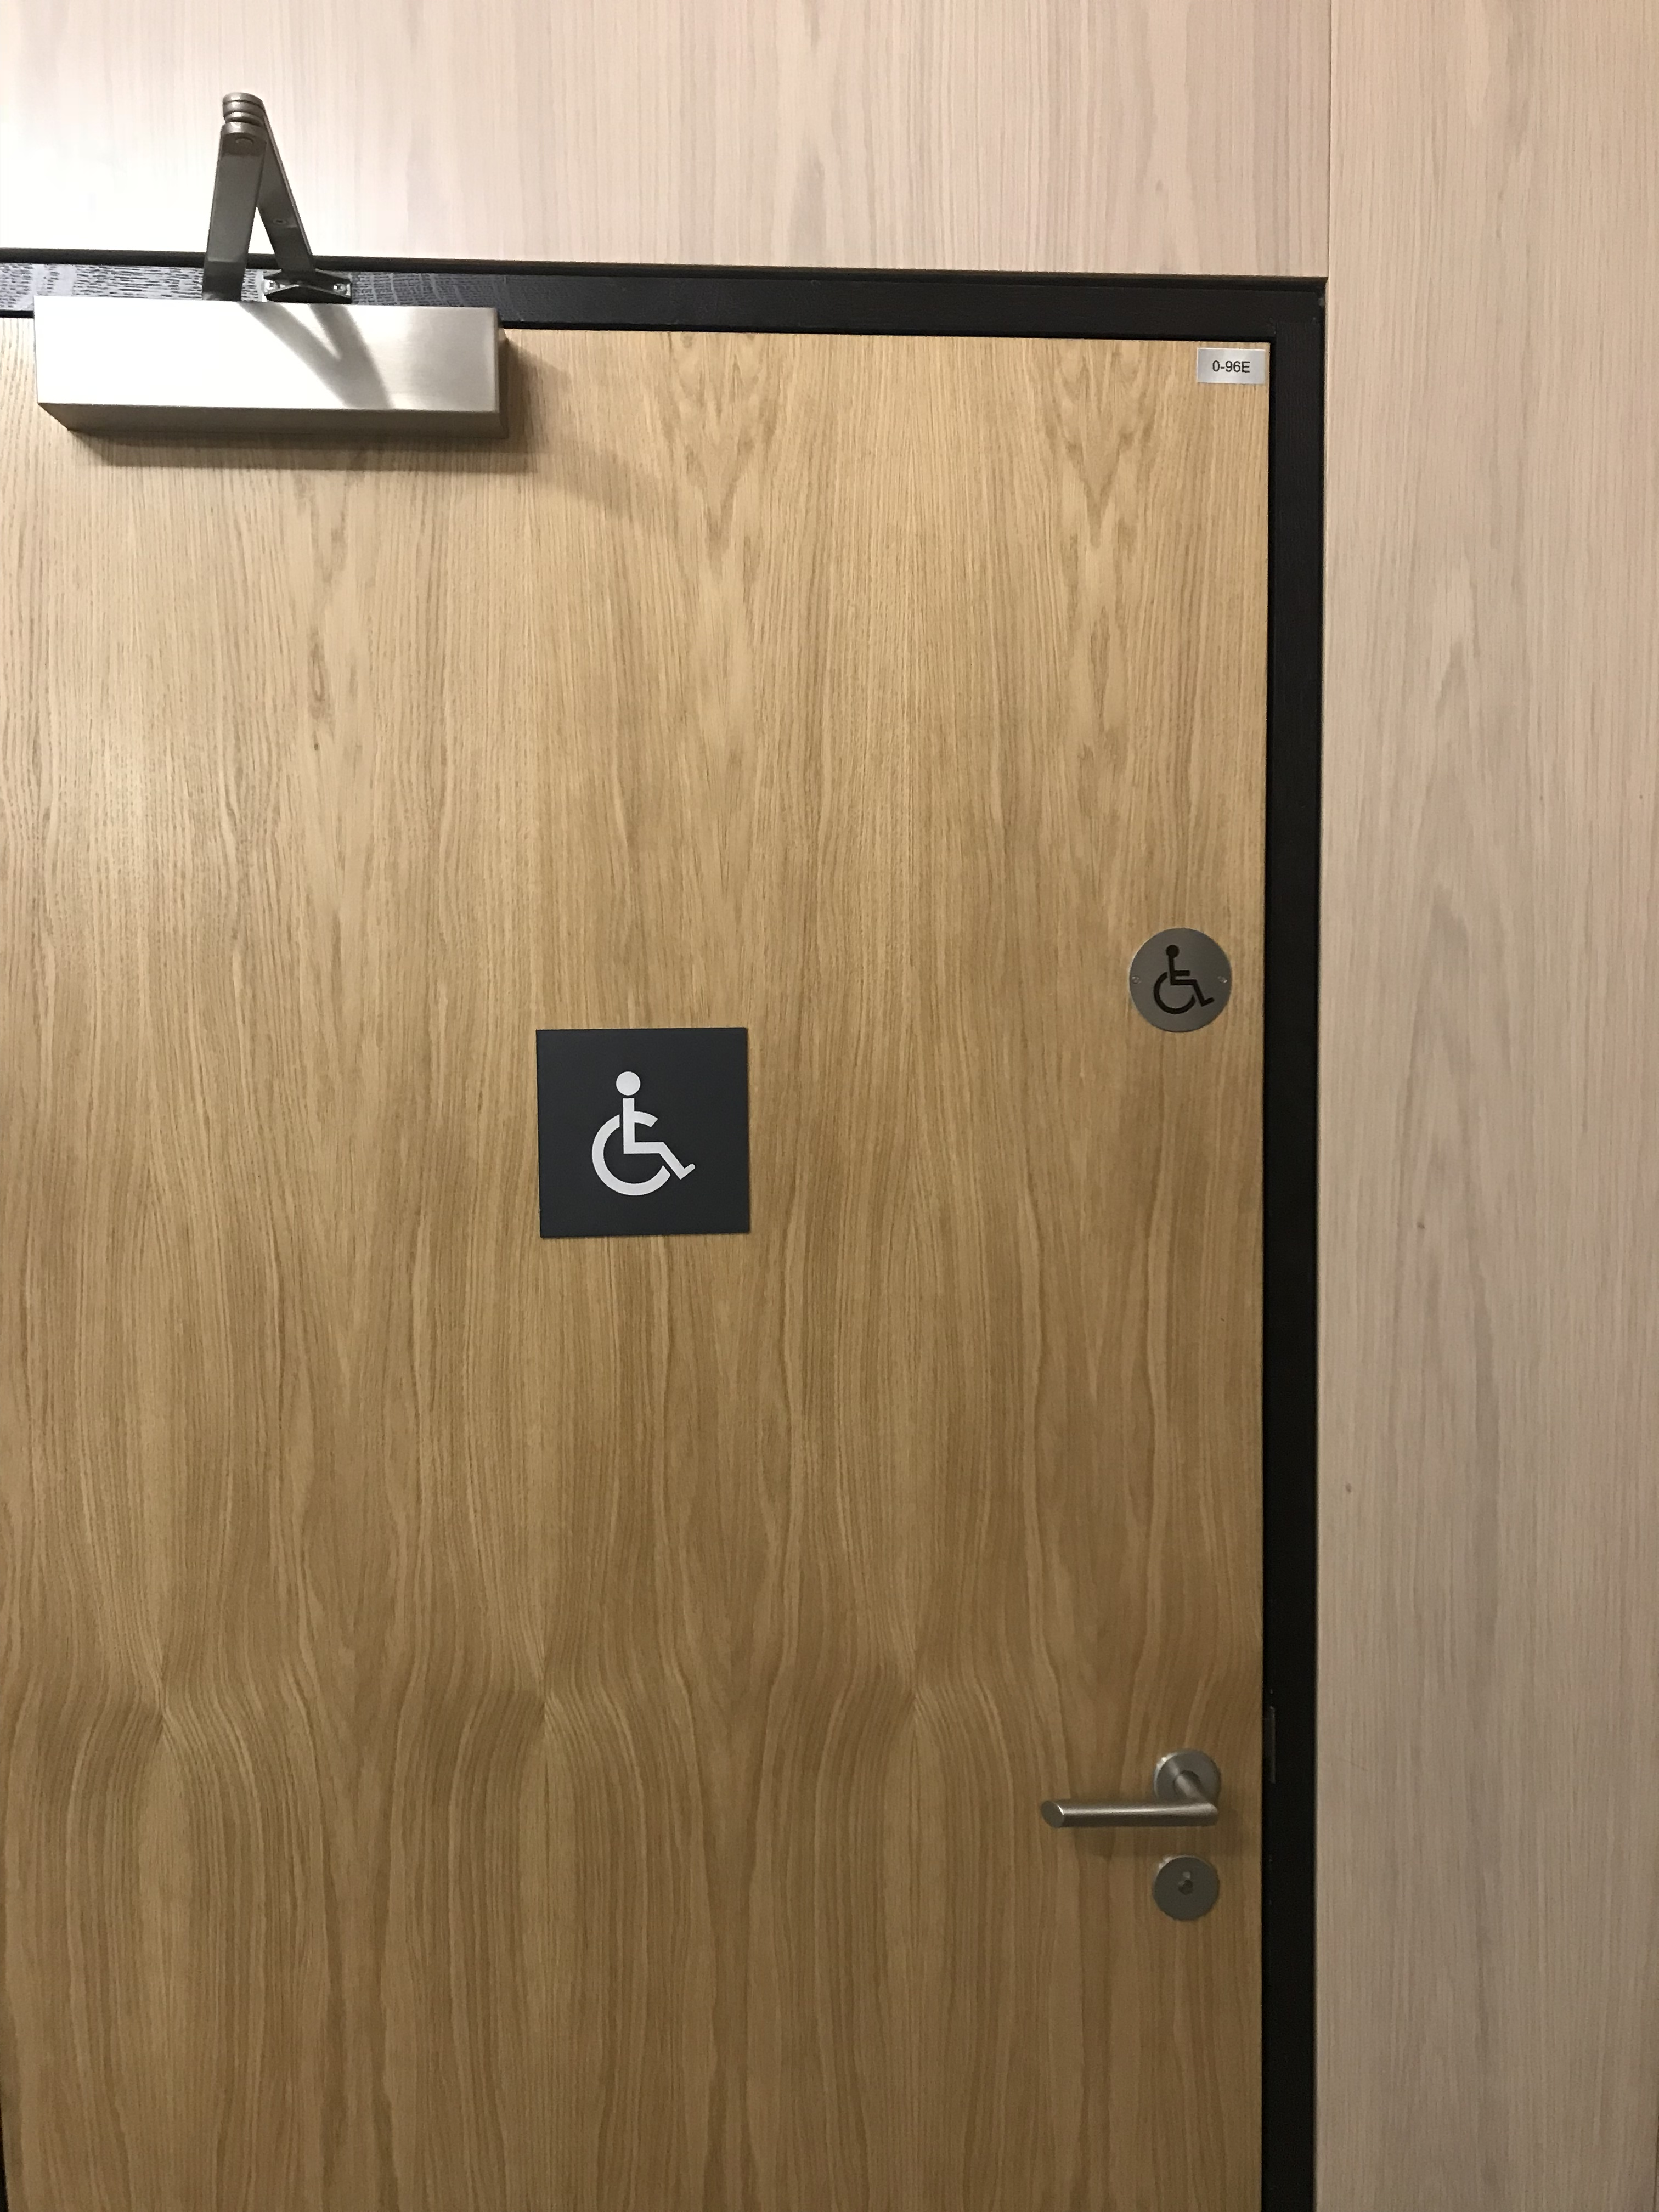 Image showing the disabled toilets and signage